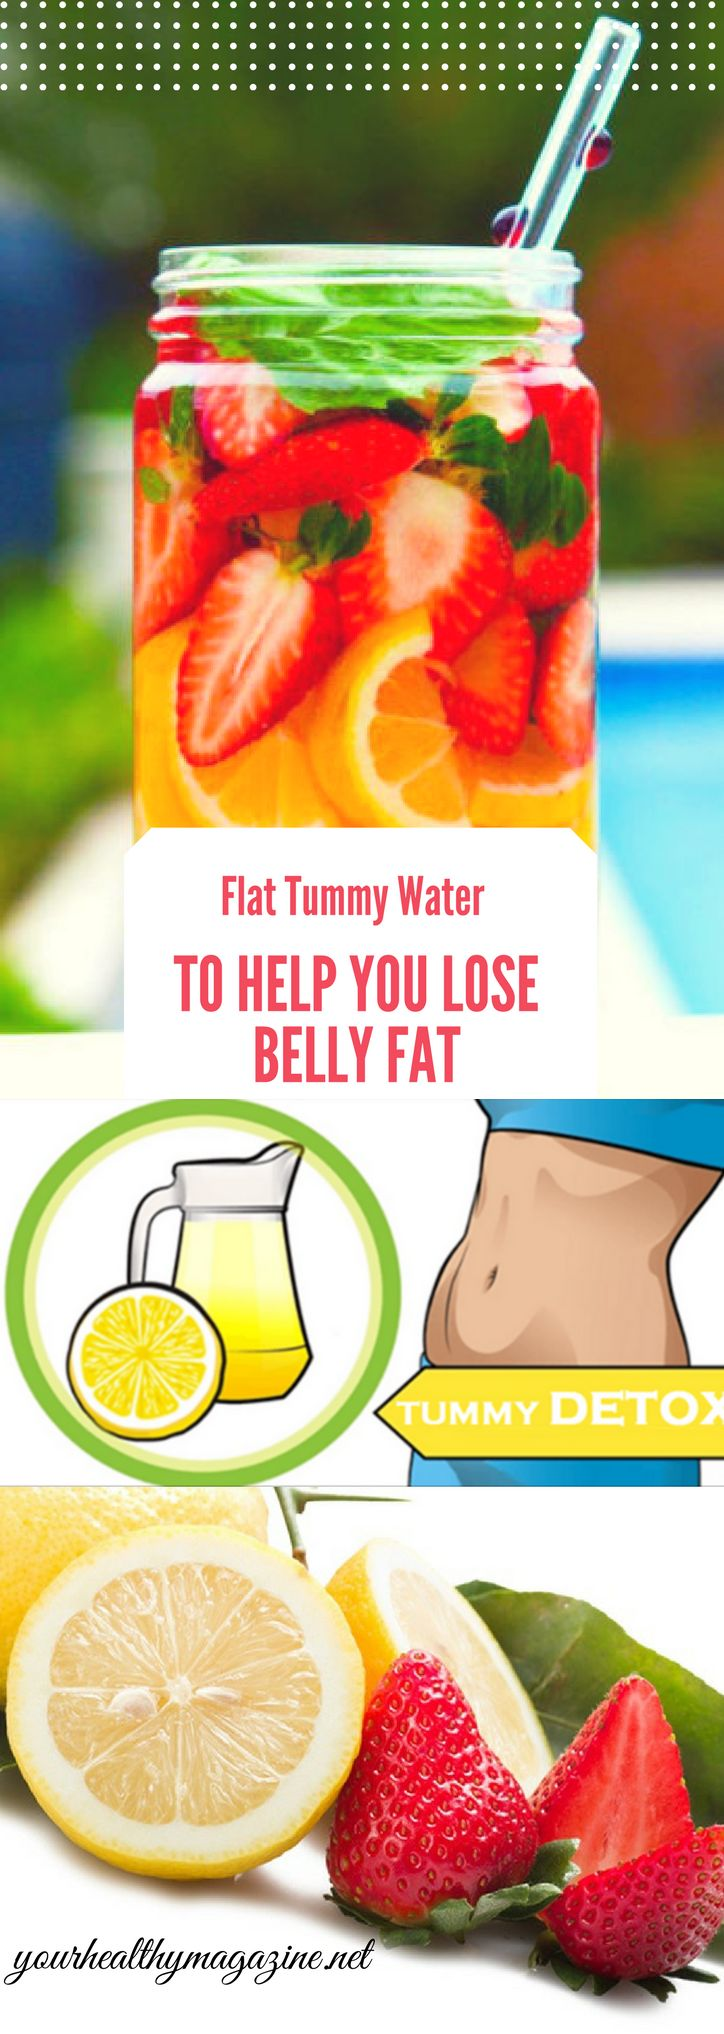 Flat Tummy Water To Help You Lose Belly Fat